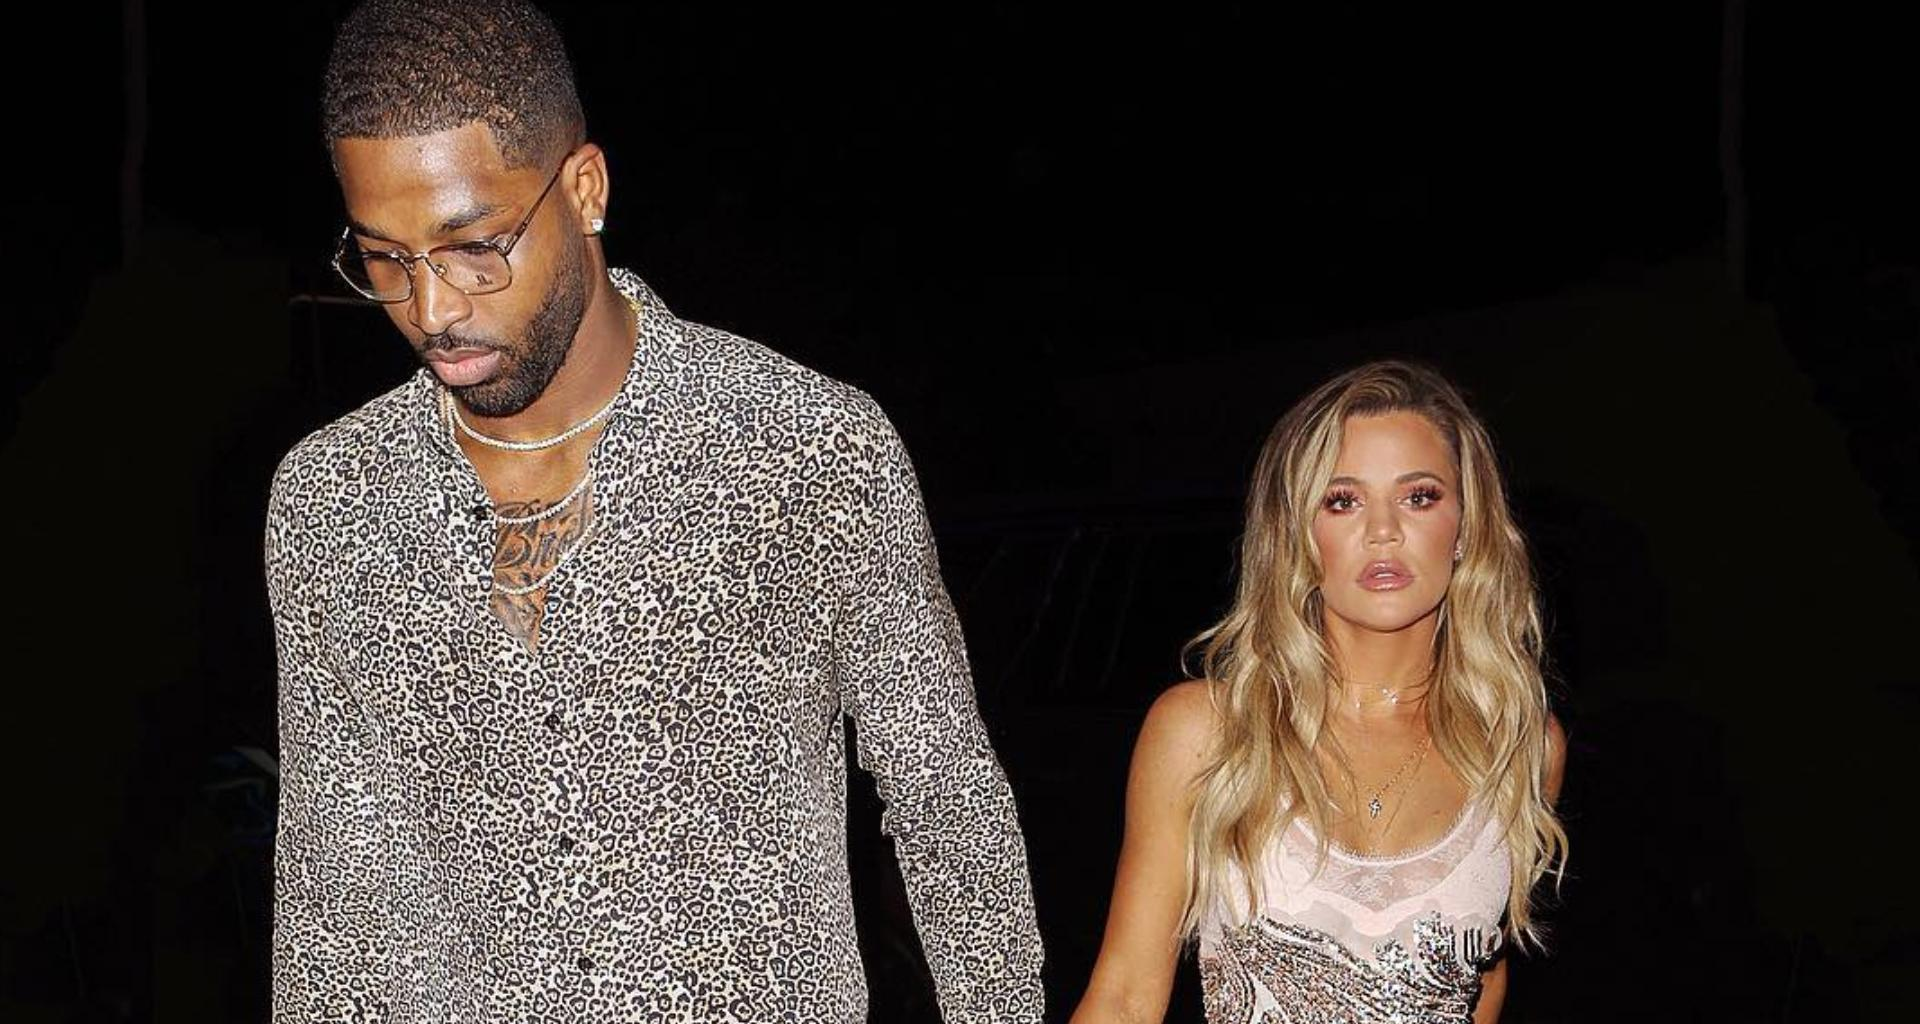 Khloe Kardashian Bakes Tristan Thompson A Cake -- It Appears That The Exes Are Back Together From These Photos!